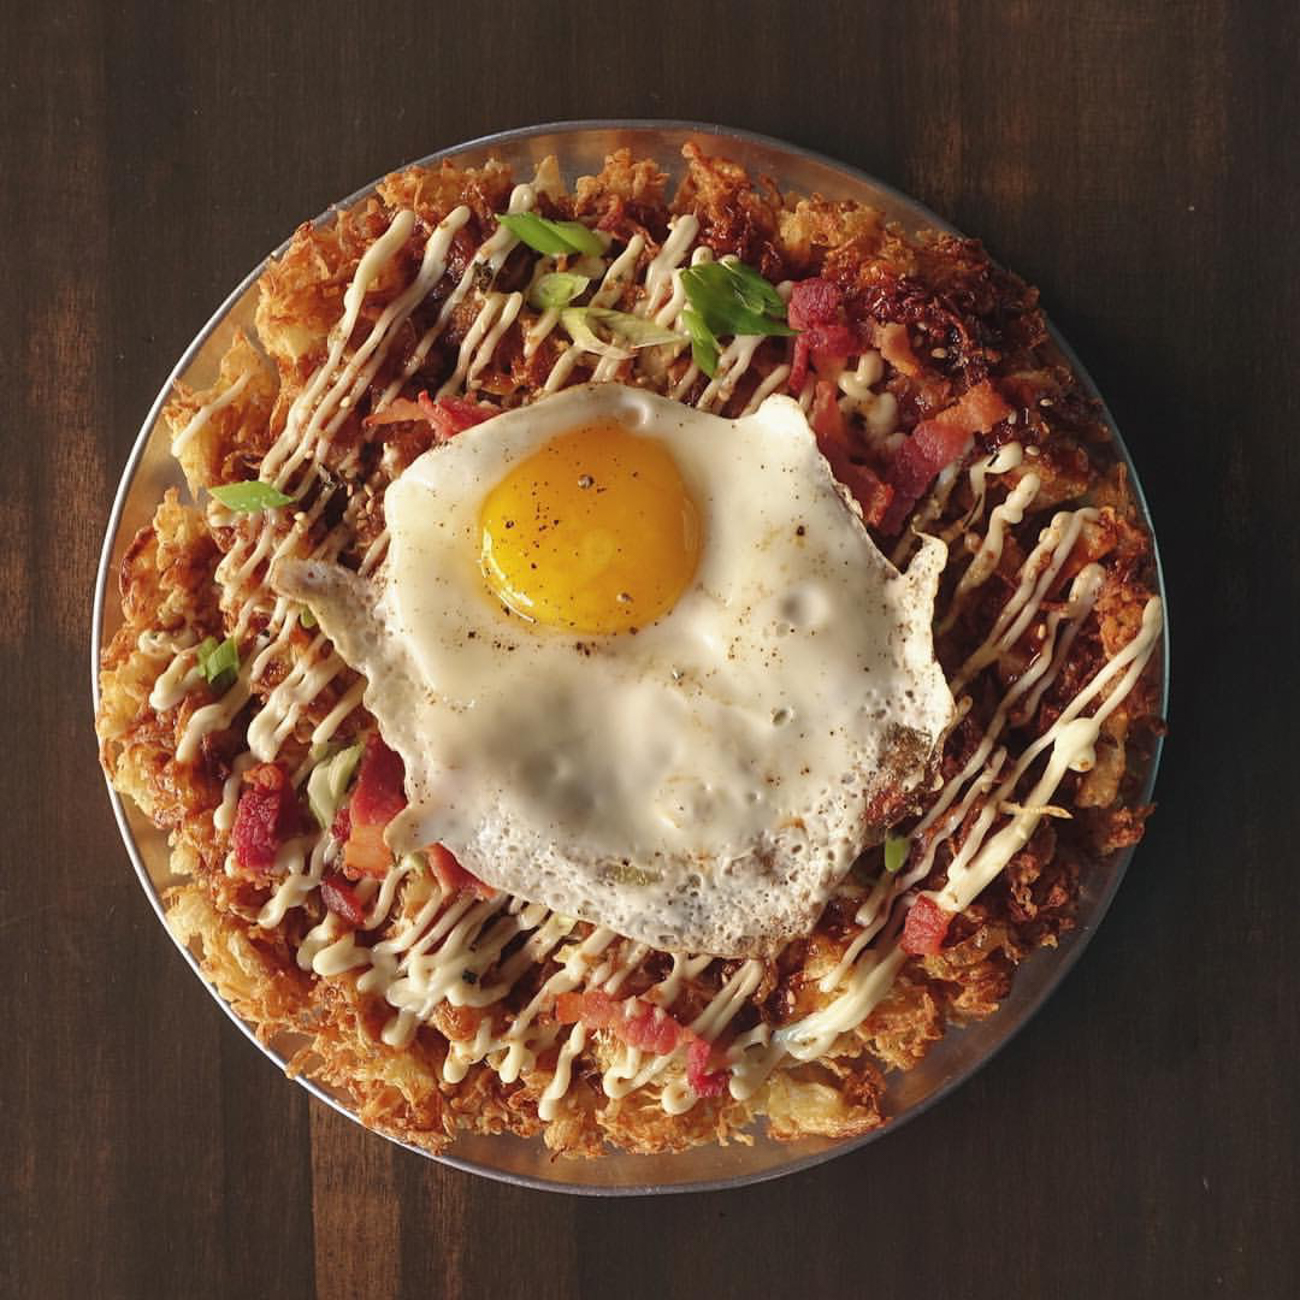 House Okonomiyaki: Japanese mayo, tonkatsu, bacon, green onion, and a fried egg / Image courtesy of Quan Hapa // Published: 1.10.17